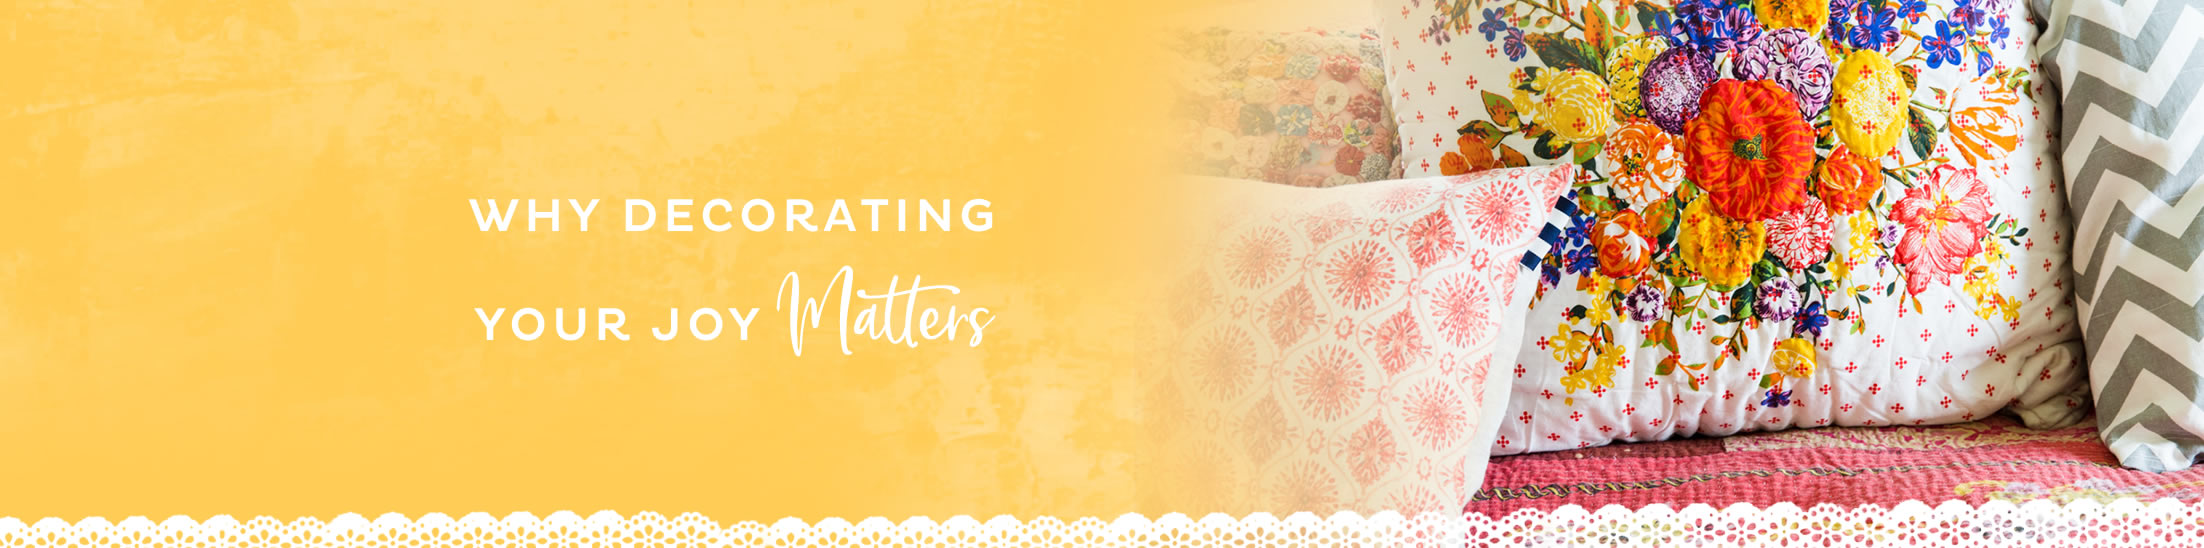 Why Decorating Your Joy Matters